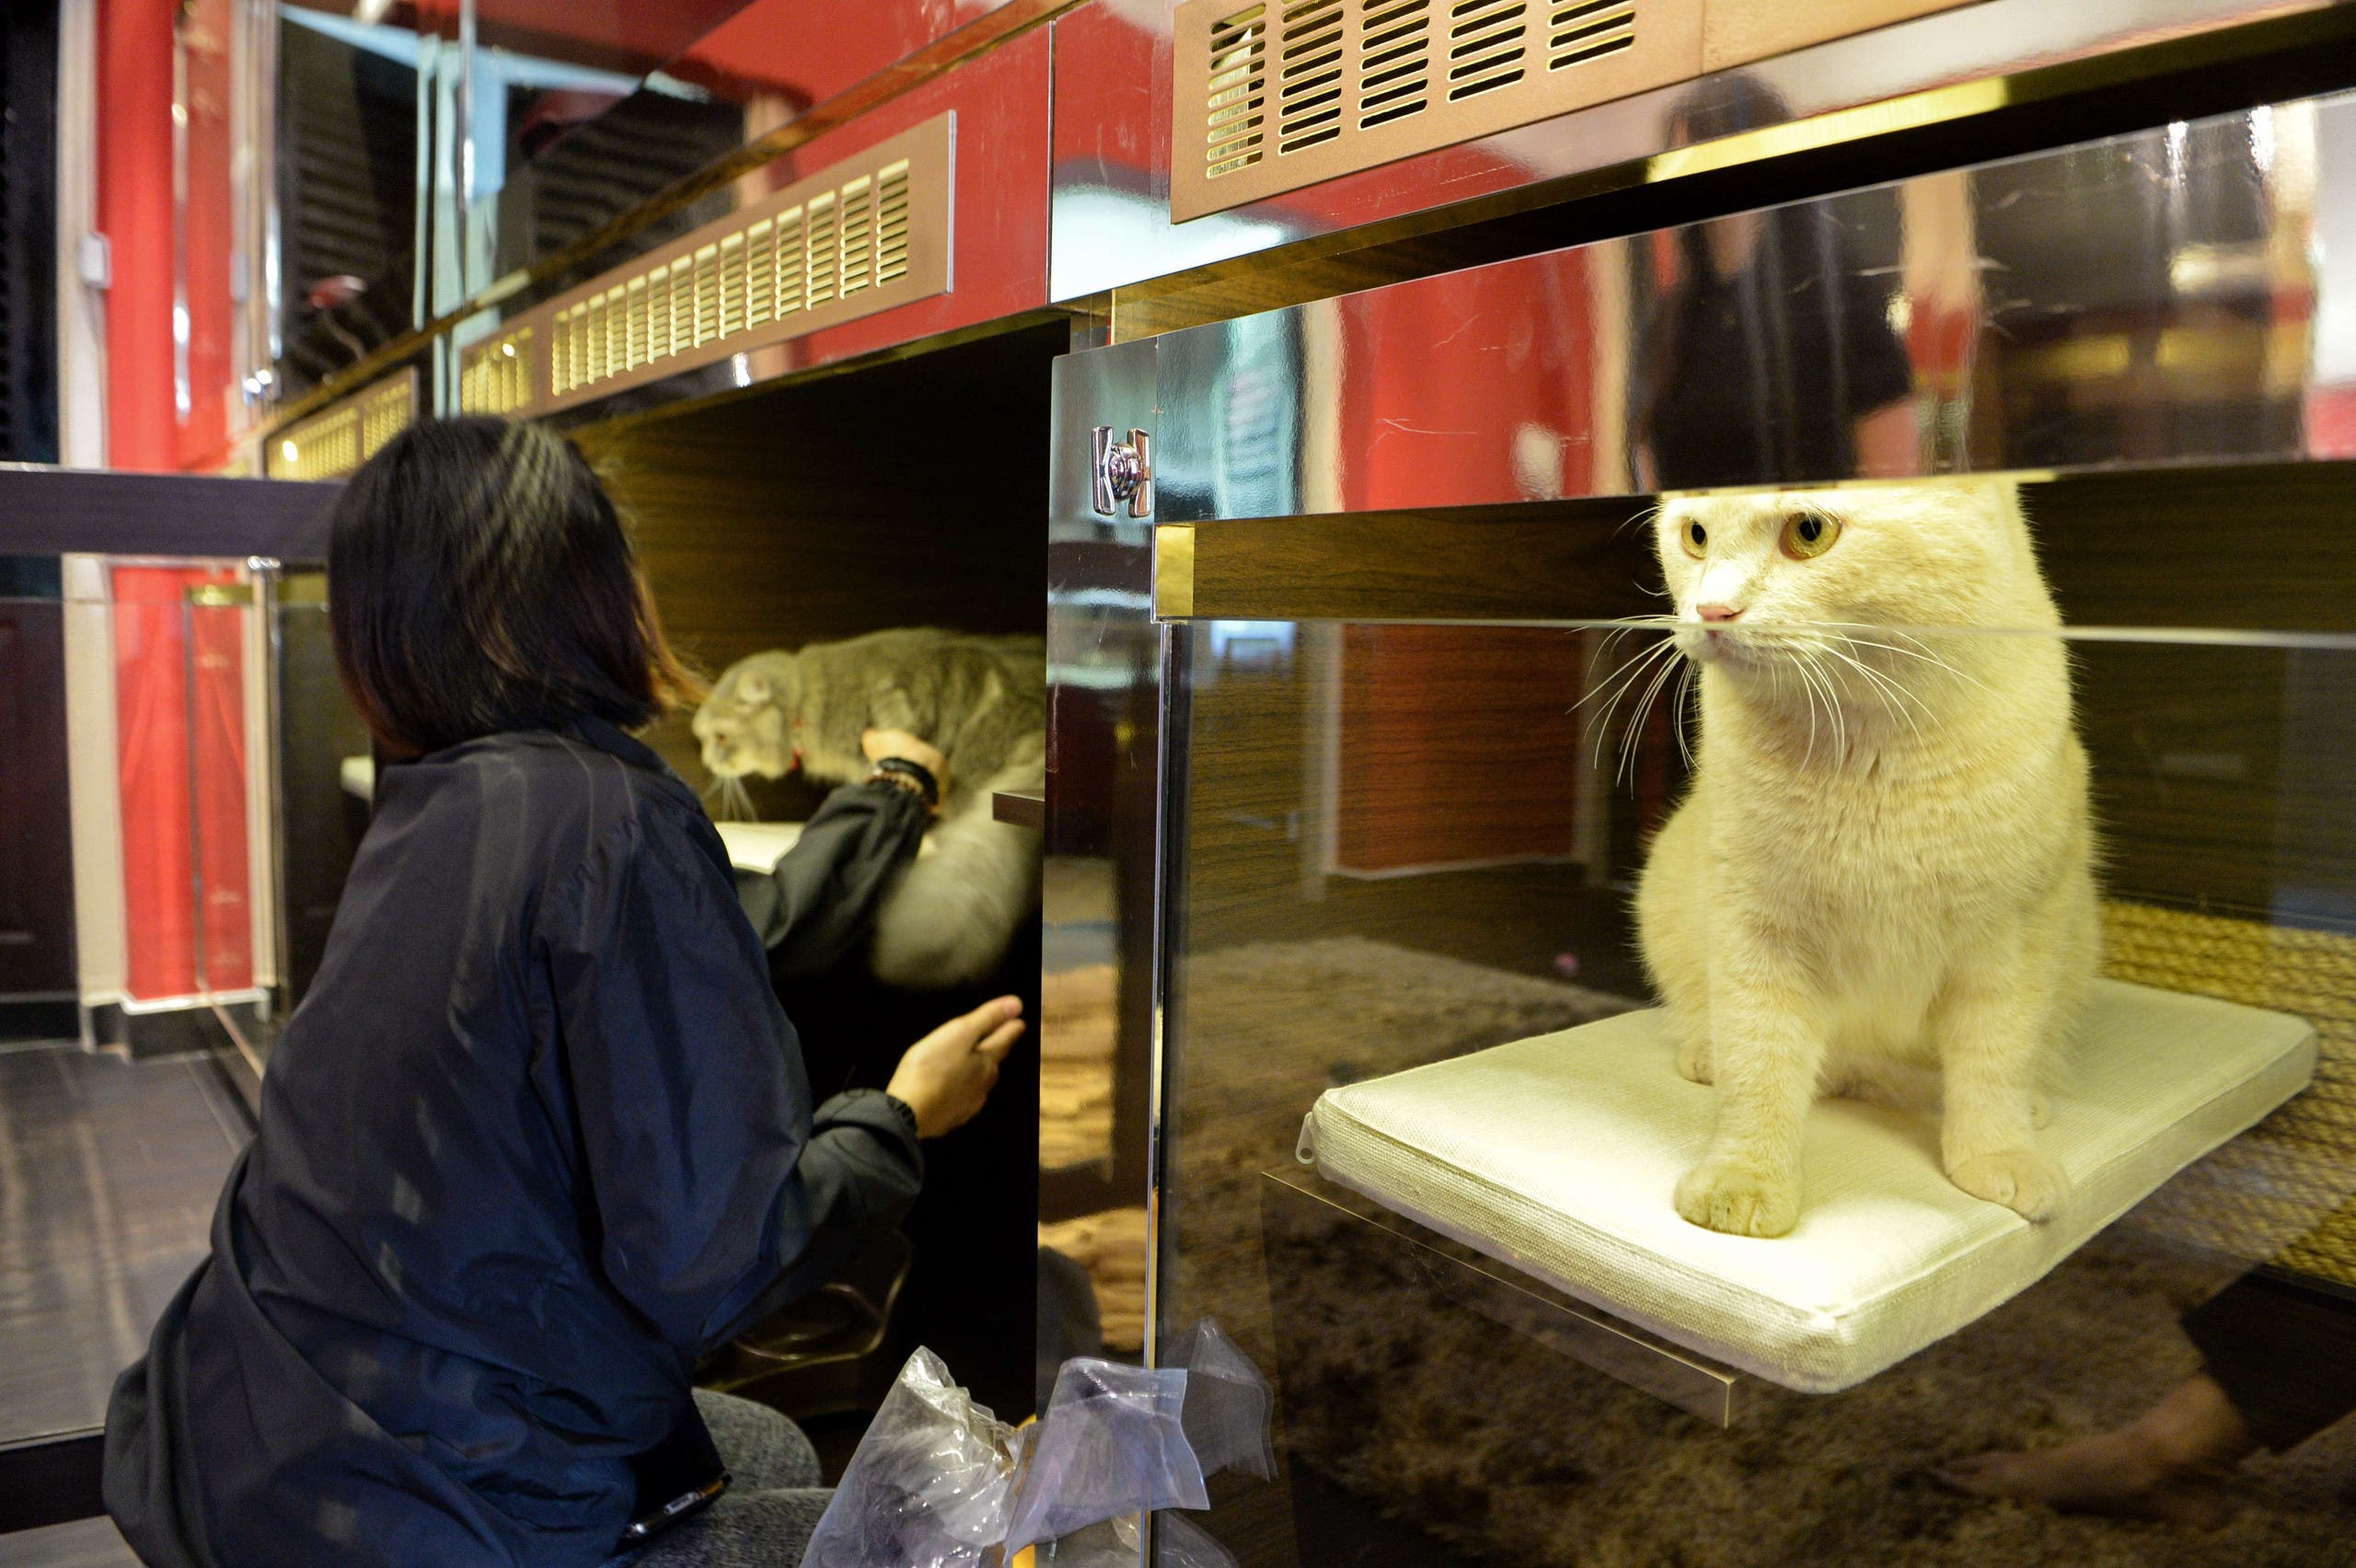 A staff member places a pet cat in its Purrfection Suite at the Wagington luxury pet hotel in Singapore on February 24, 2016. (AFP)